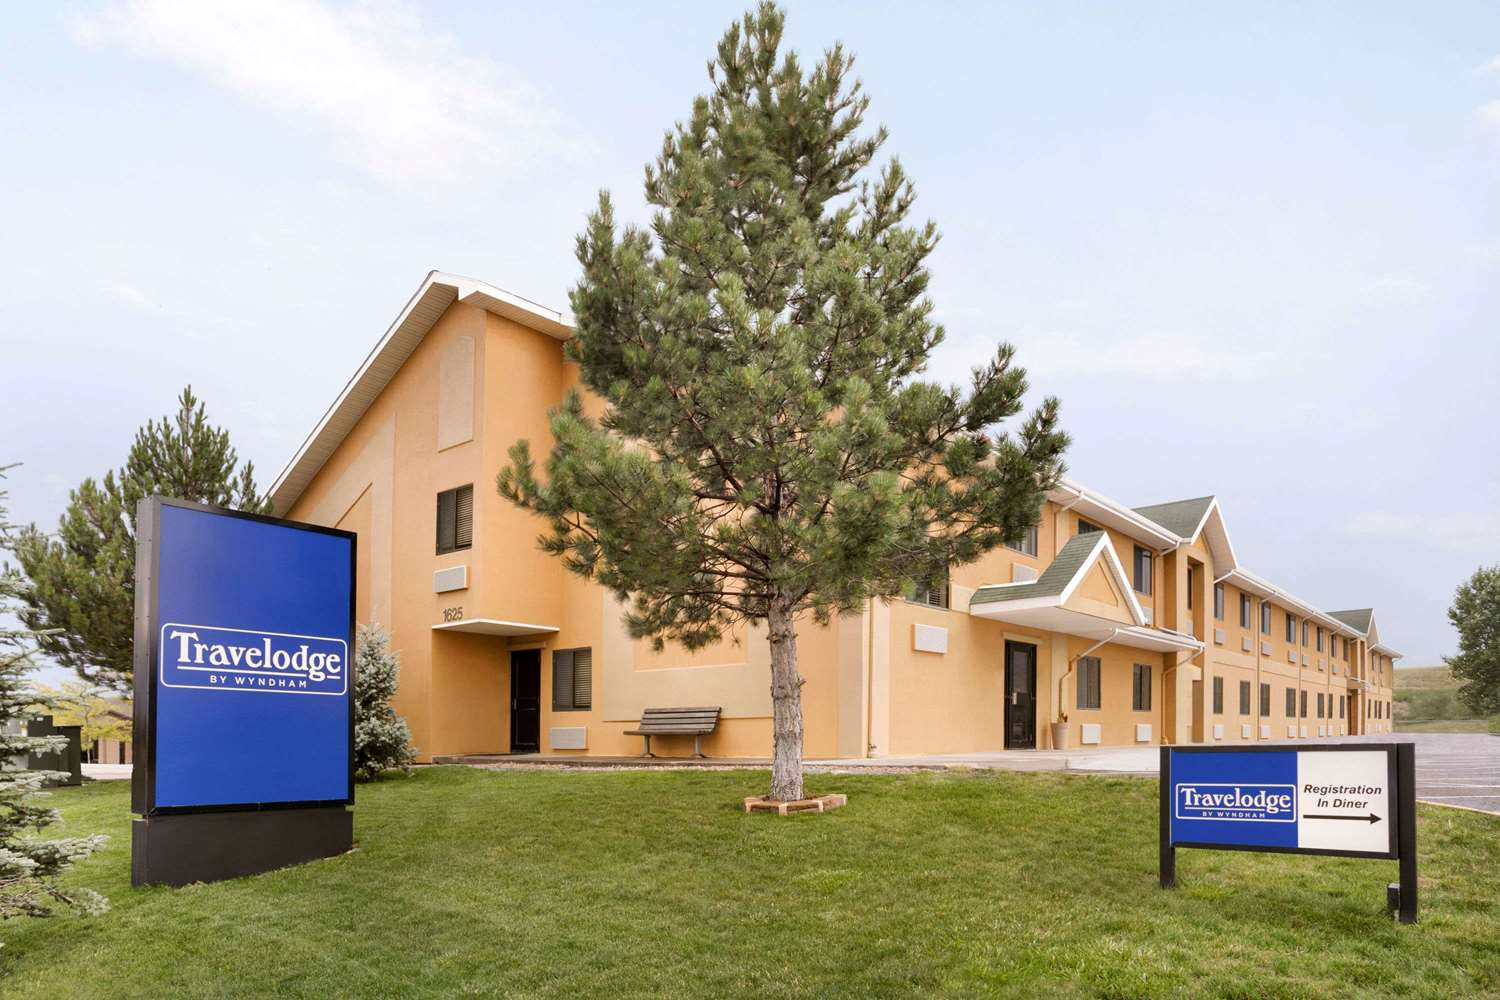 Hotels In Cheyenne Wy That Allow Pets